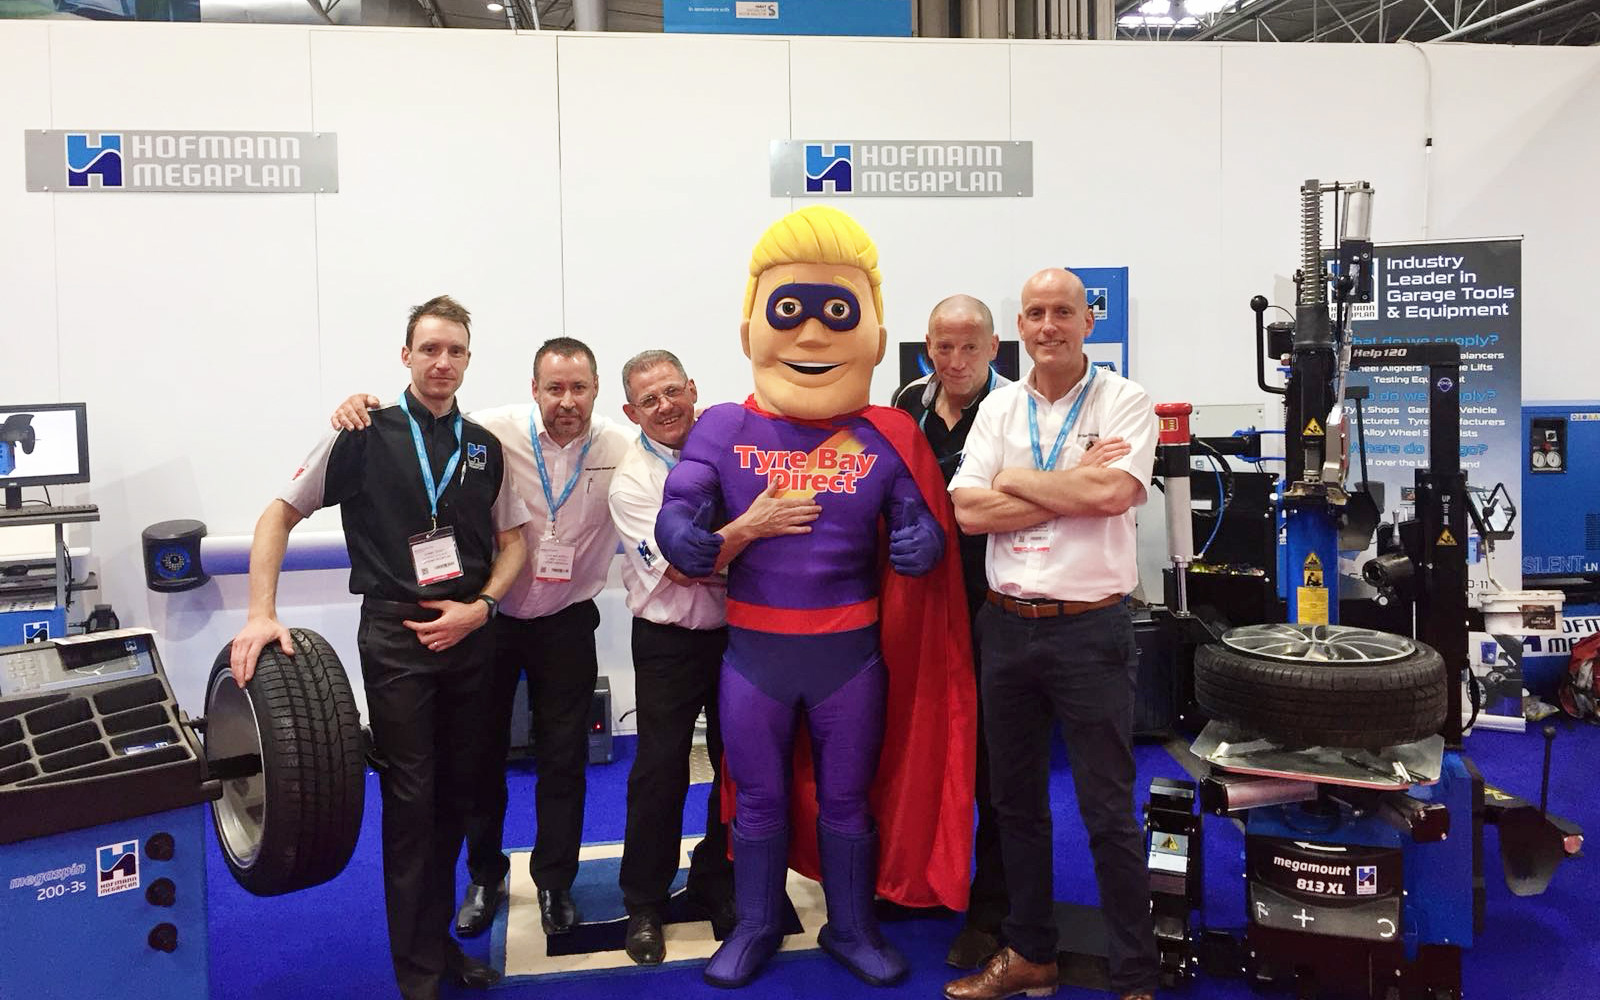 Tyre Bay Dave with Automechanika Exhibitor 11